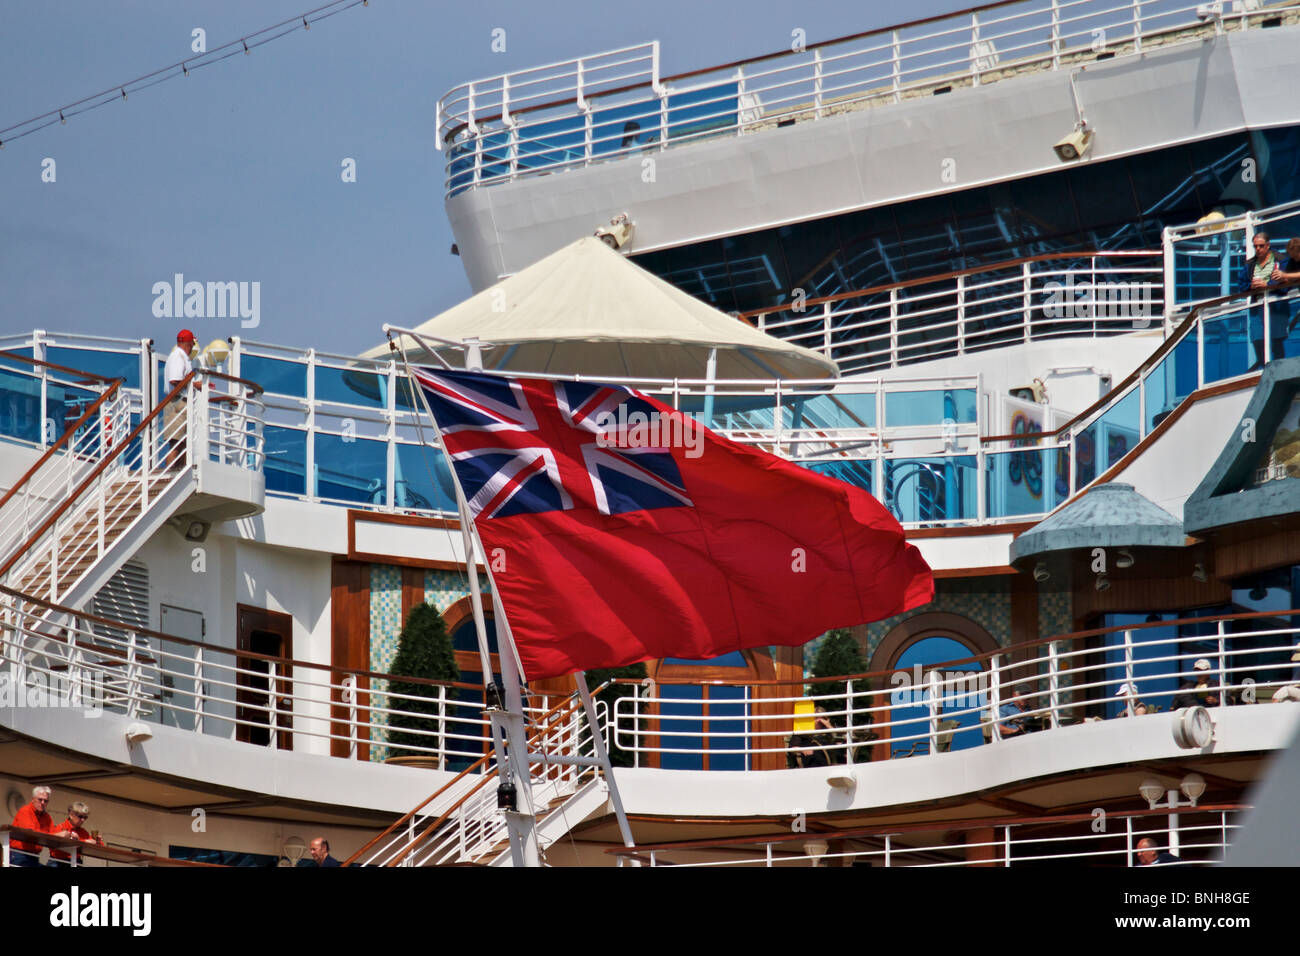 Civil Ensign being flown on Cruise ship CROWN PRINCESS whilst moored at Liverpool's cruise ship terminal - Stock Image